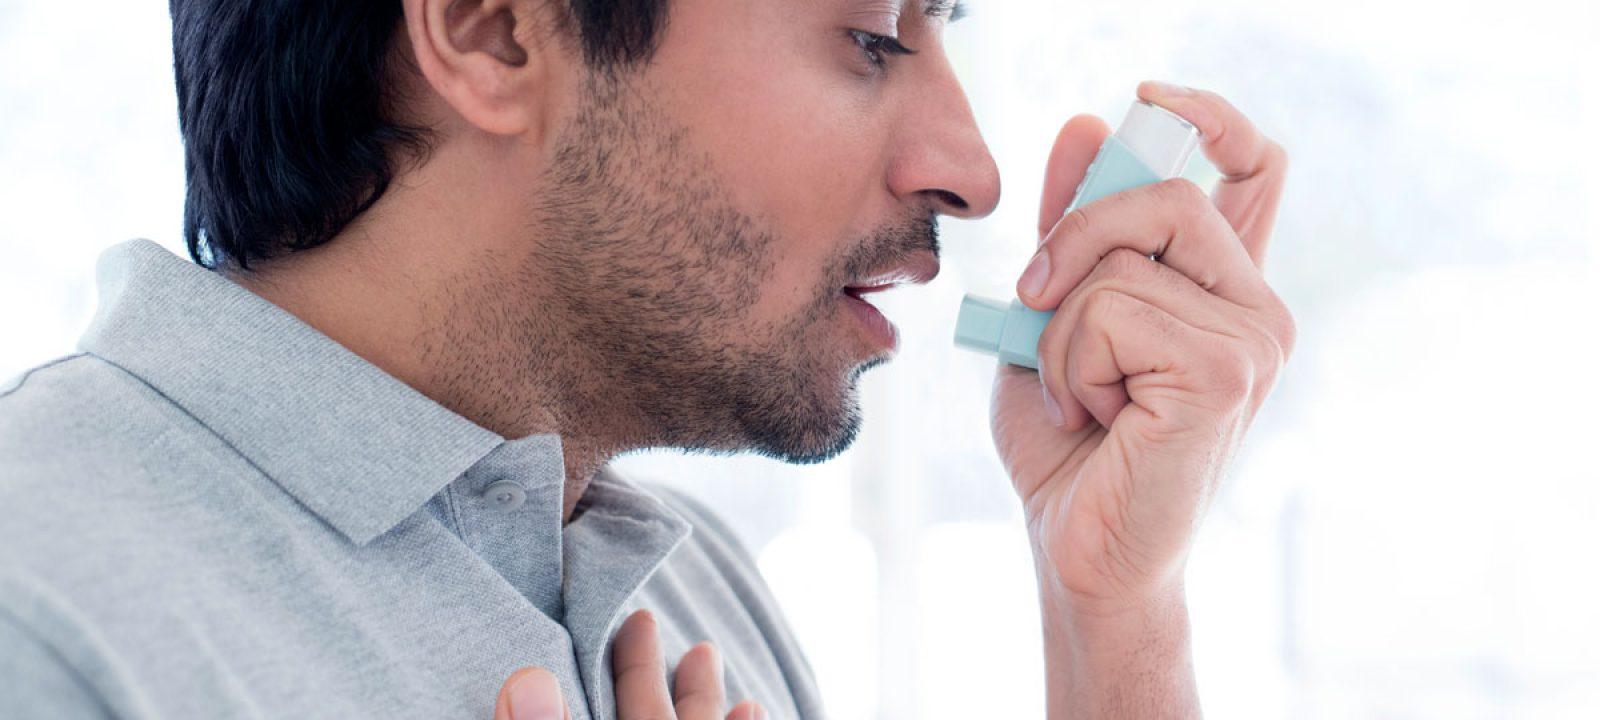 The future of inhalers